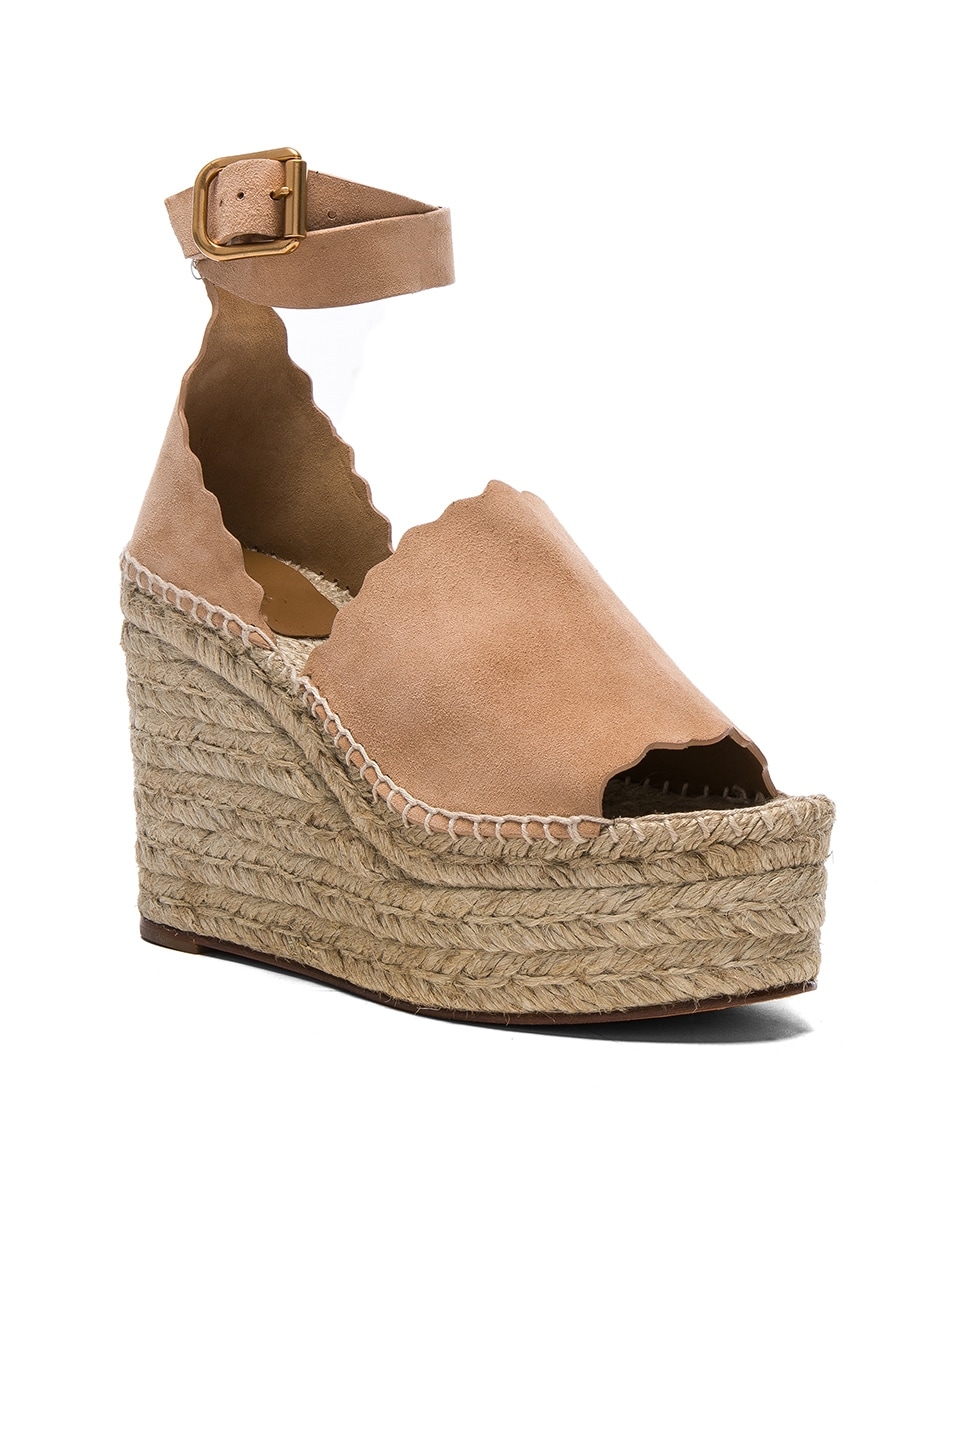 Image 2 of Chloe Suede Lauren Espadrille Wedges in Reef Shell